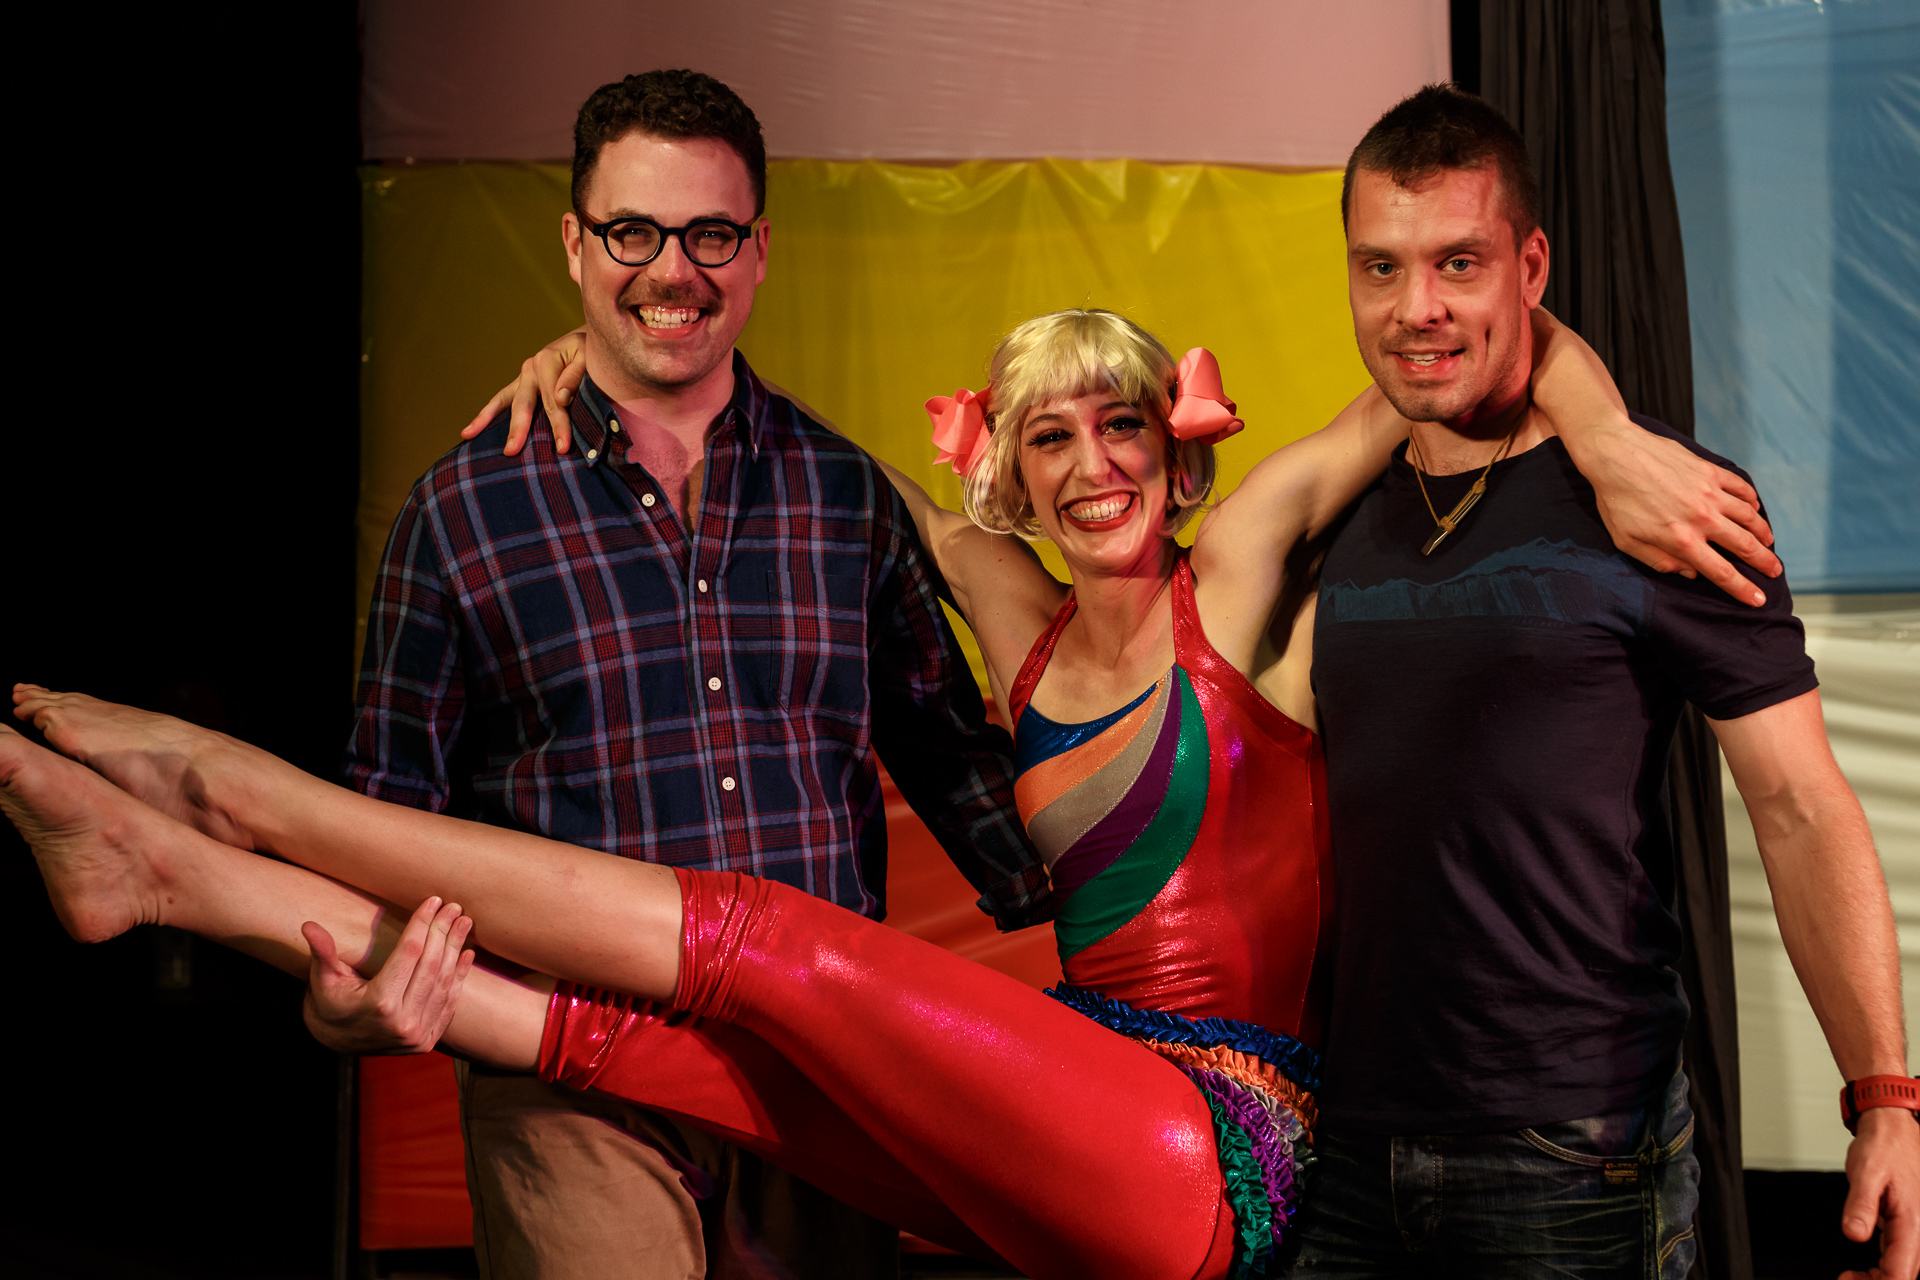 Pictured (Lto R): Julio 2 (Lachlan Snow), Circus Clare (Claire Ogden), and Dimitri (Simon Arnold). Picture Credit: Geoff Lawrence, Creative Futures Photography.